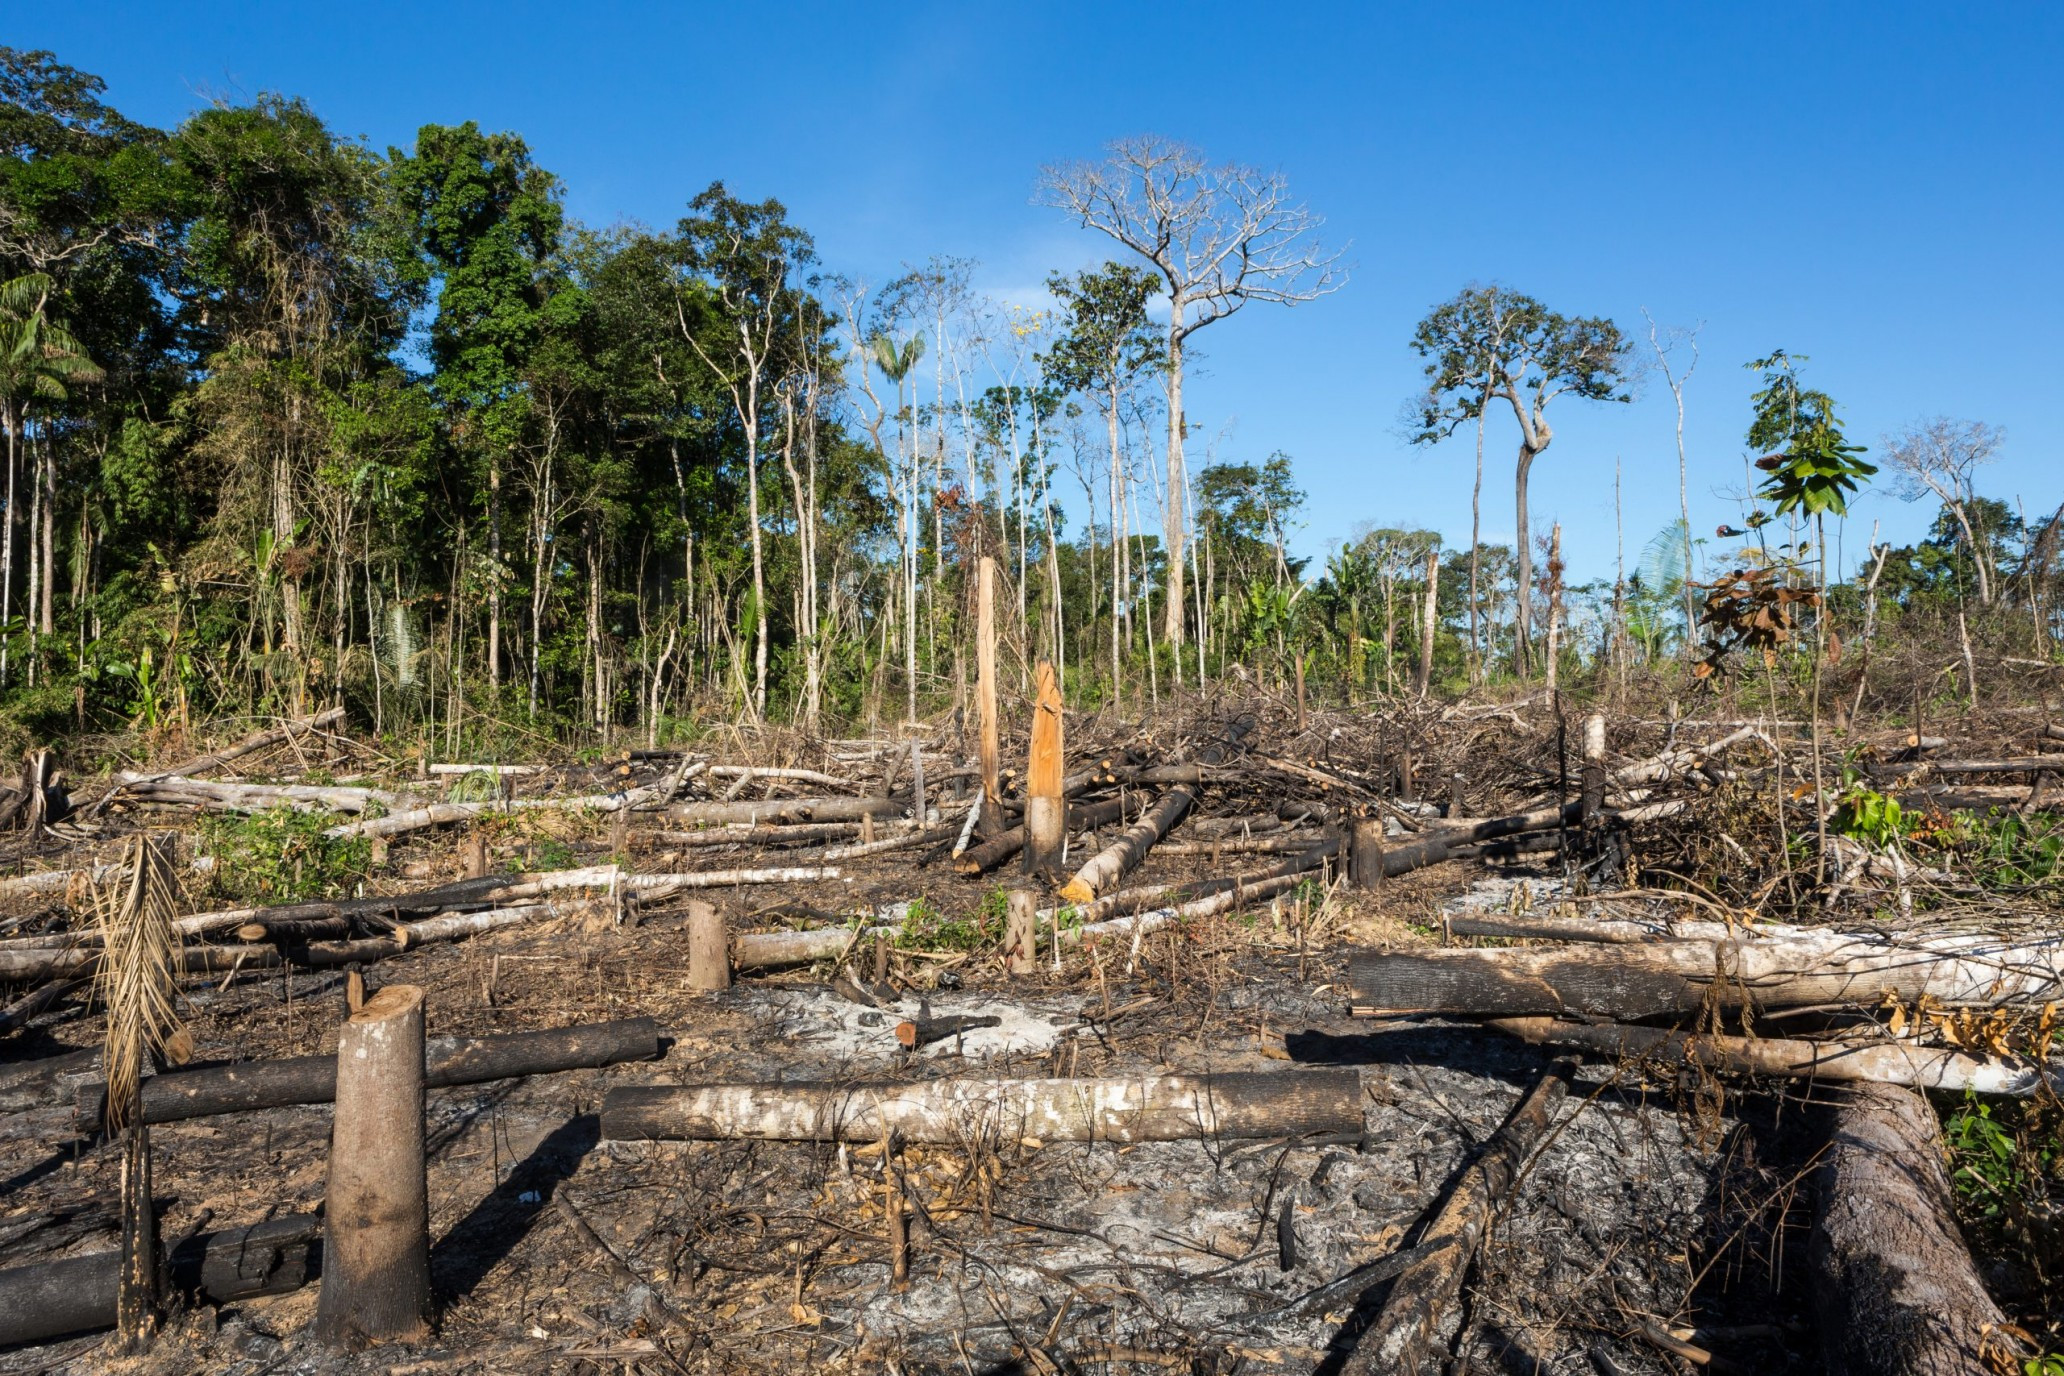 Deforestation and Human Rights